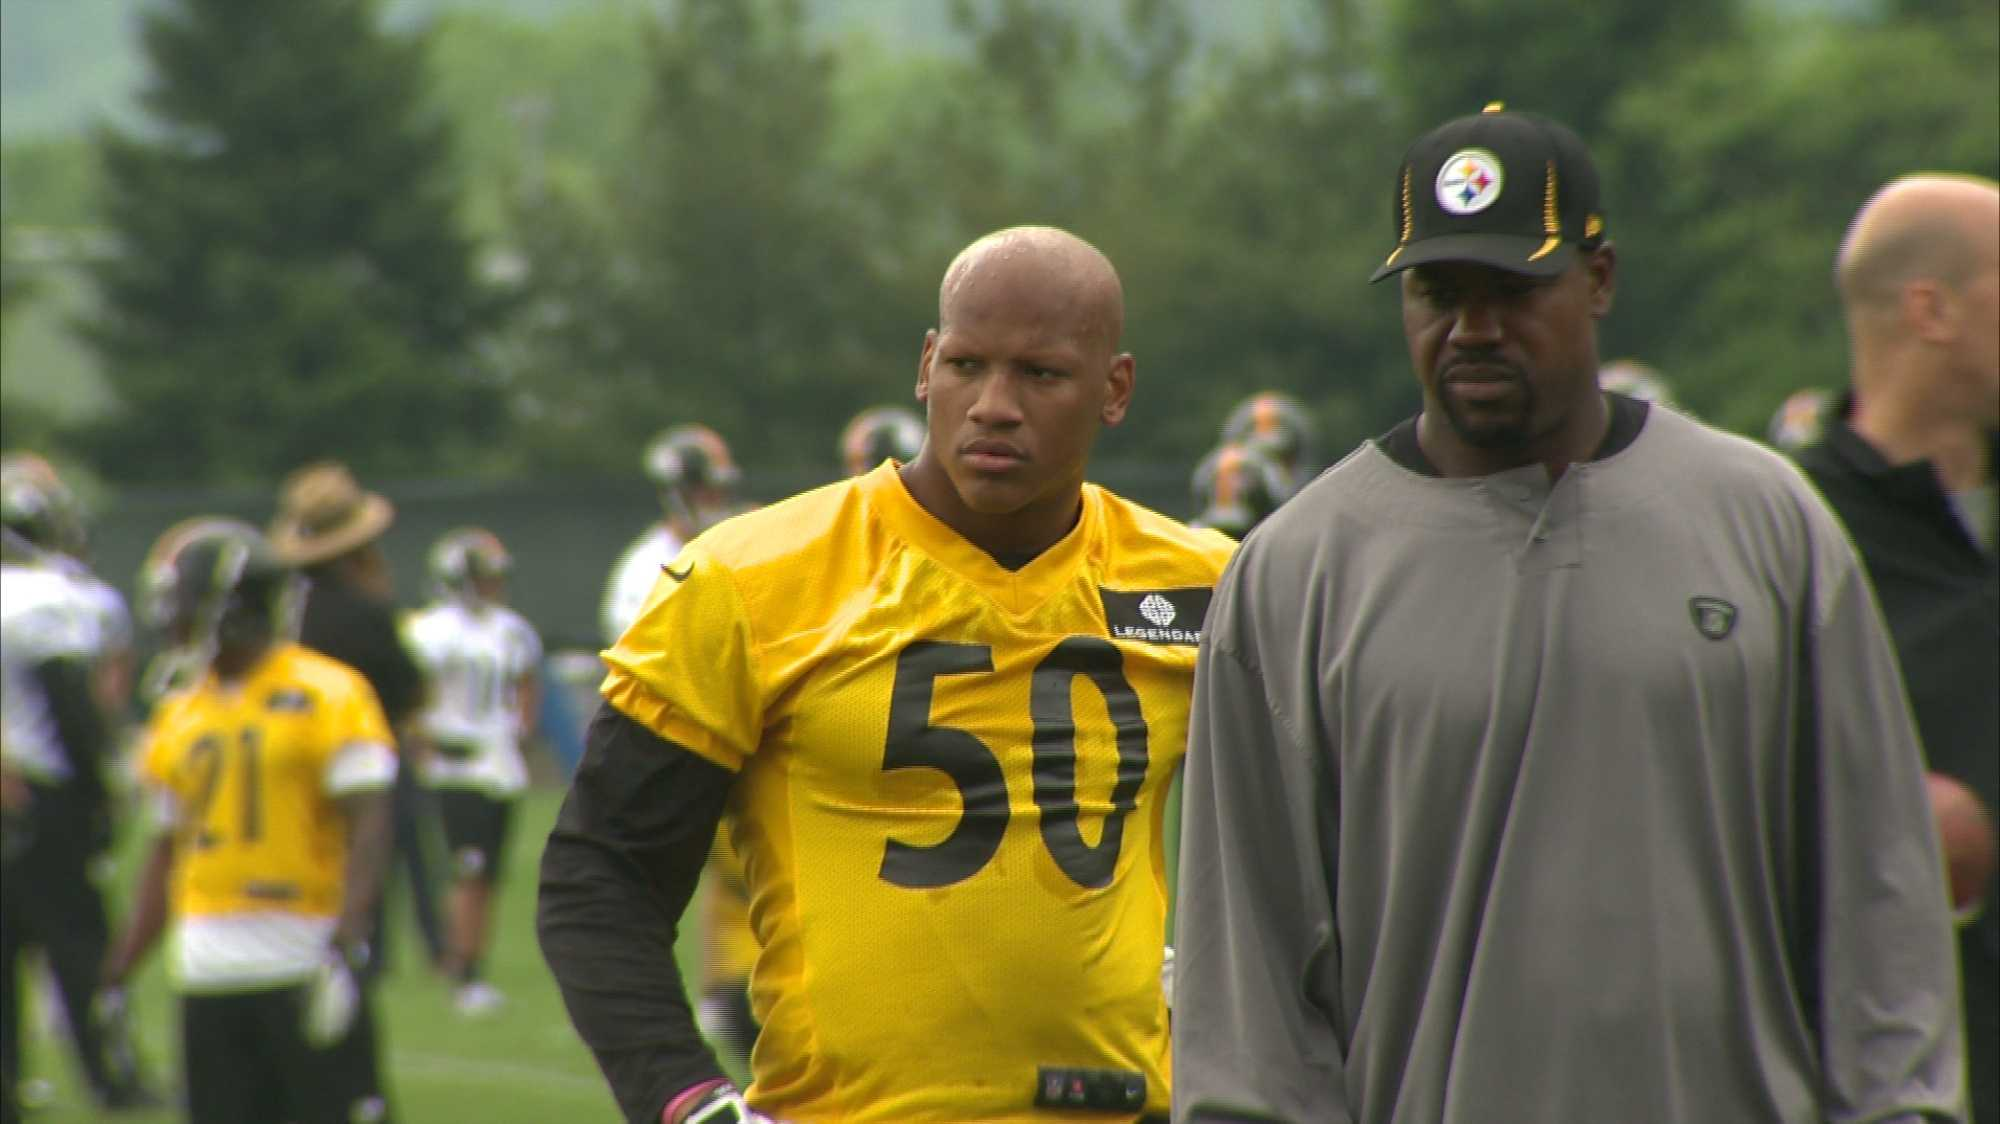 Steelers sign first round draft pick Ryan Shazier